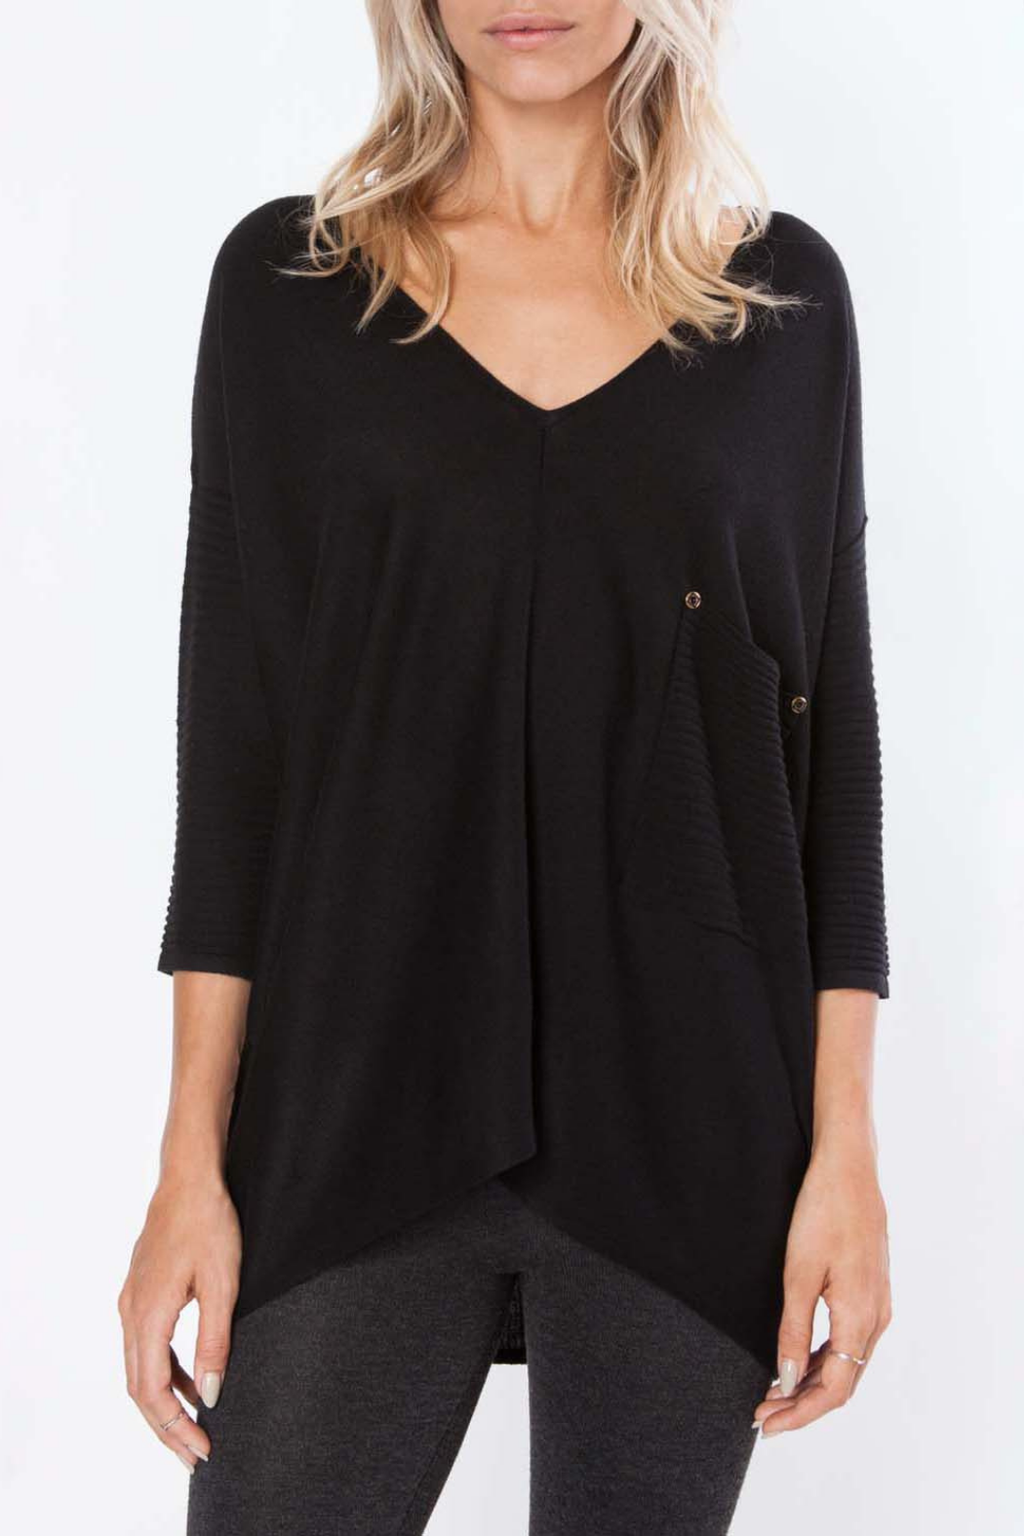 ECOVIBE Ashlyn Ribbed Sweater in Black